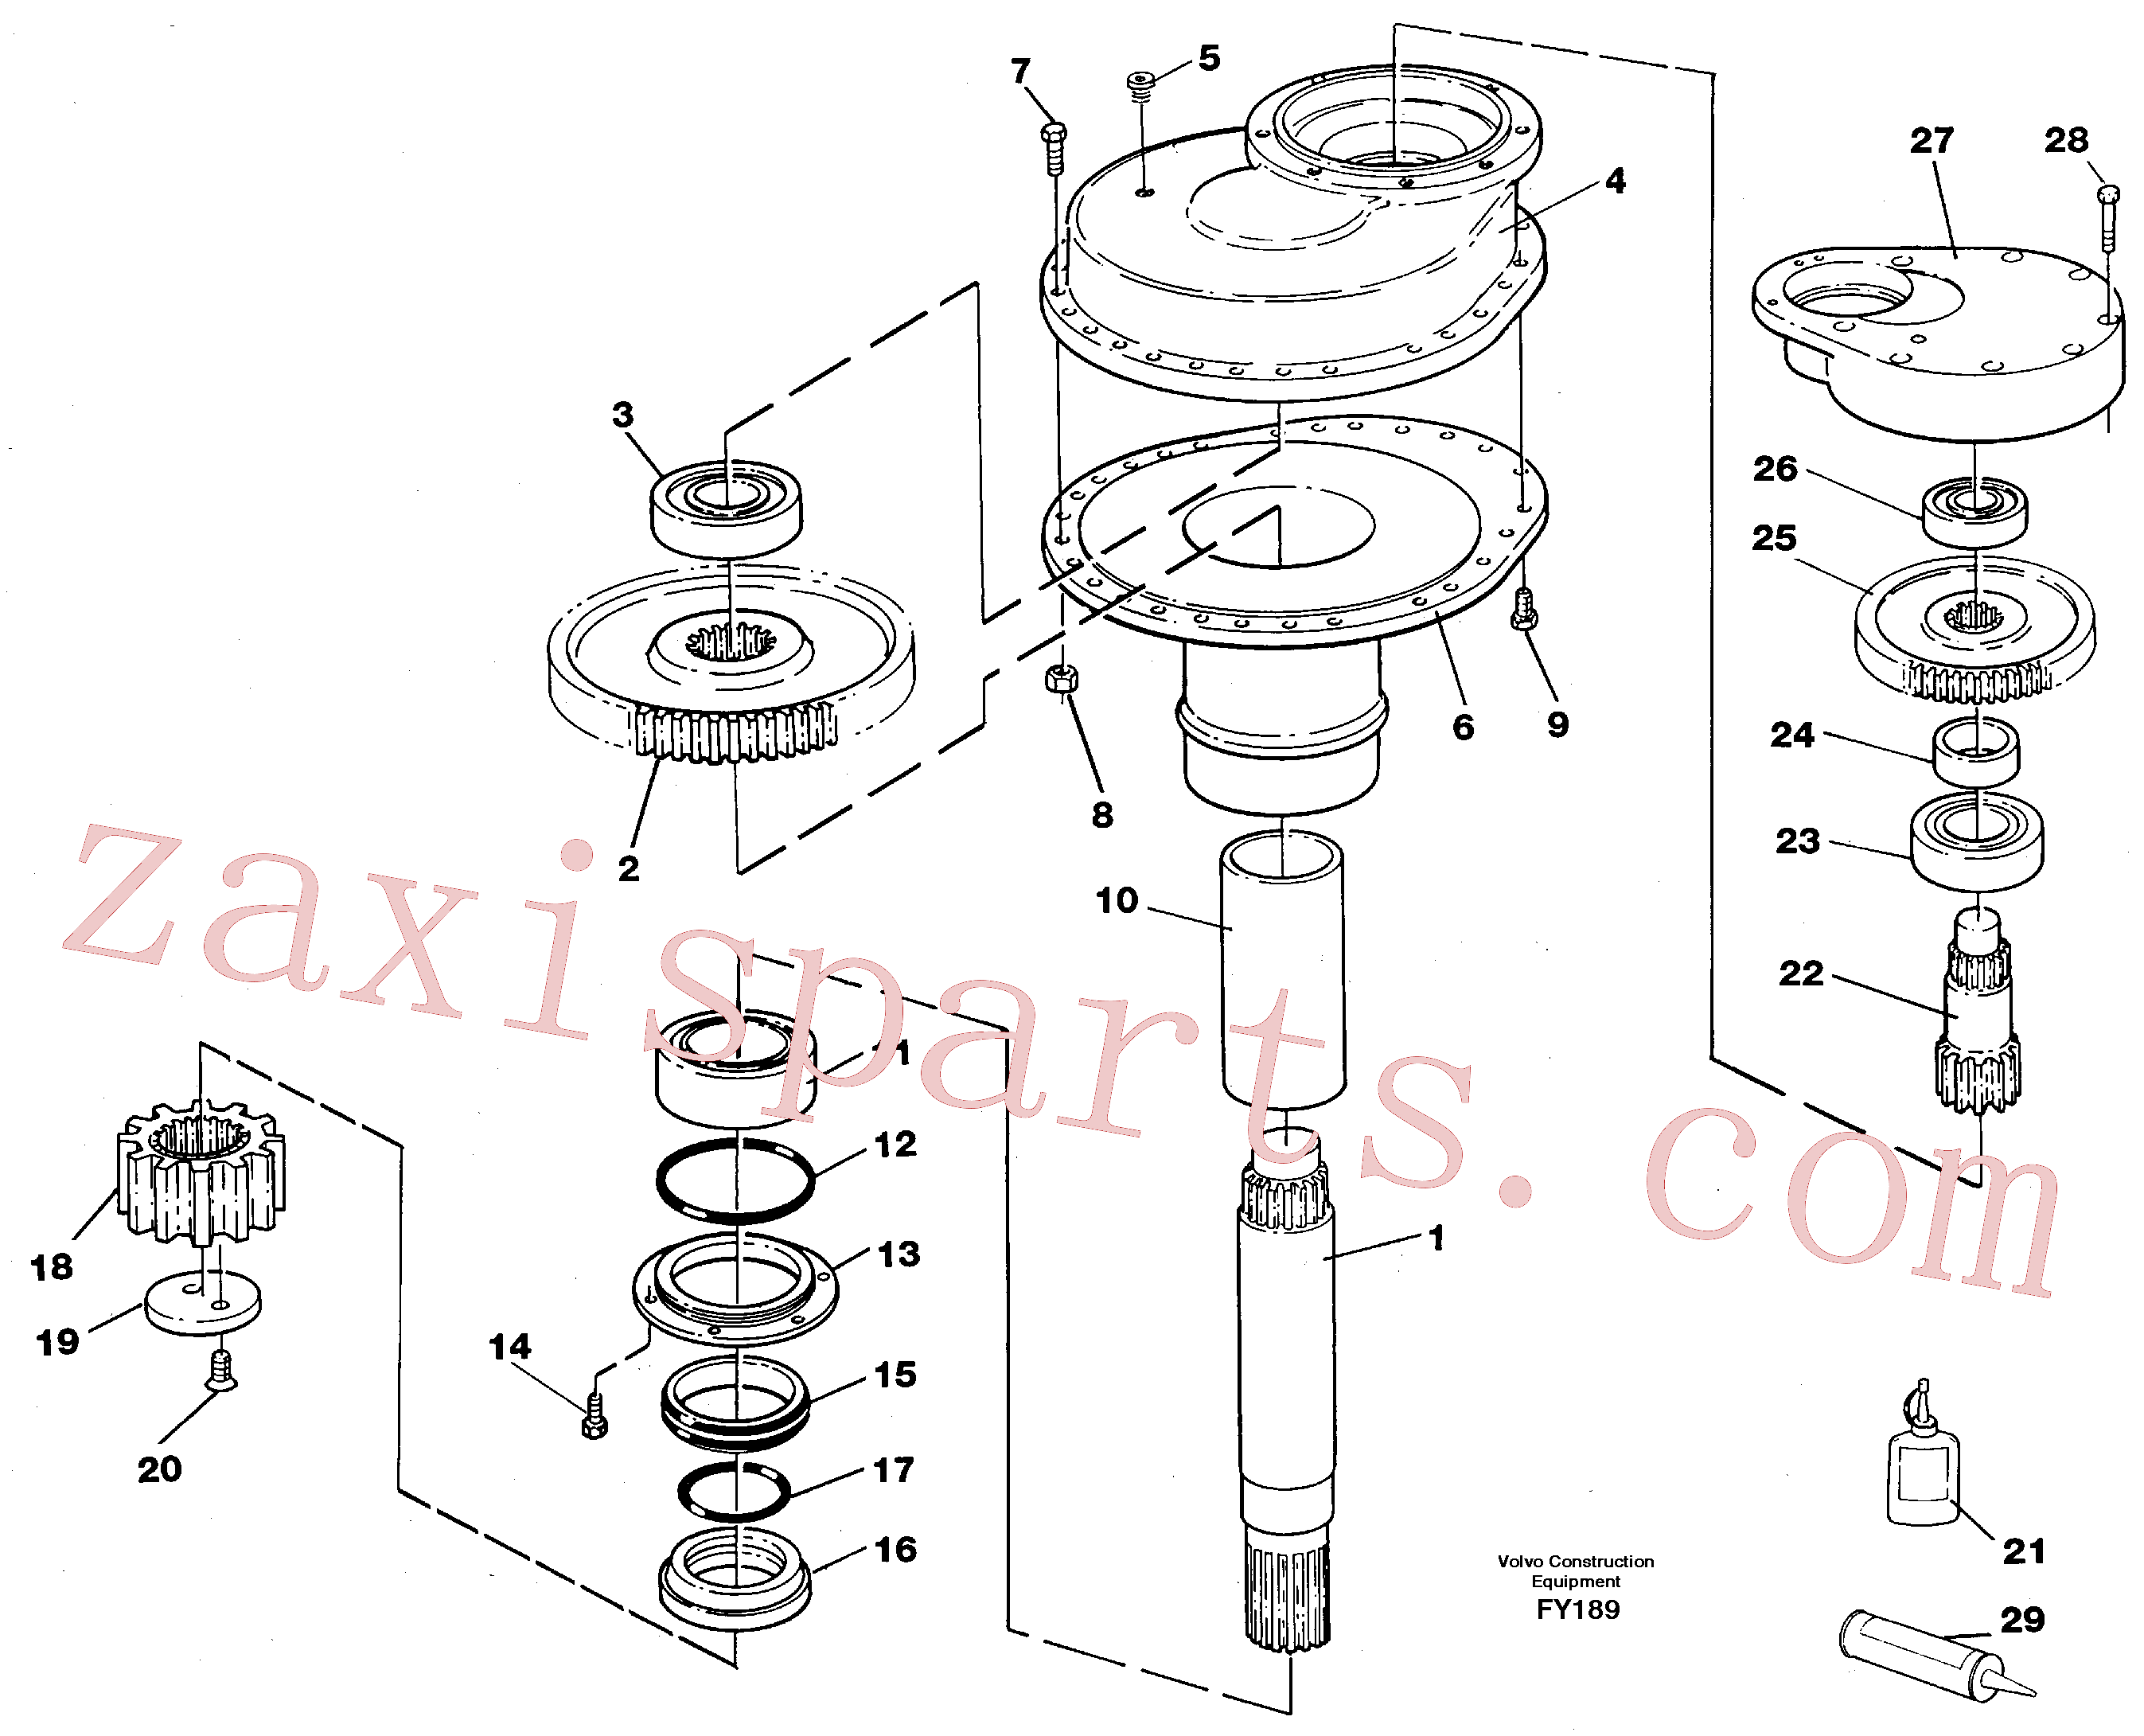 VOE14014695 for Volvo Swing gearbox(FY189 assembly)